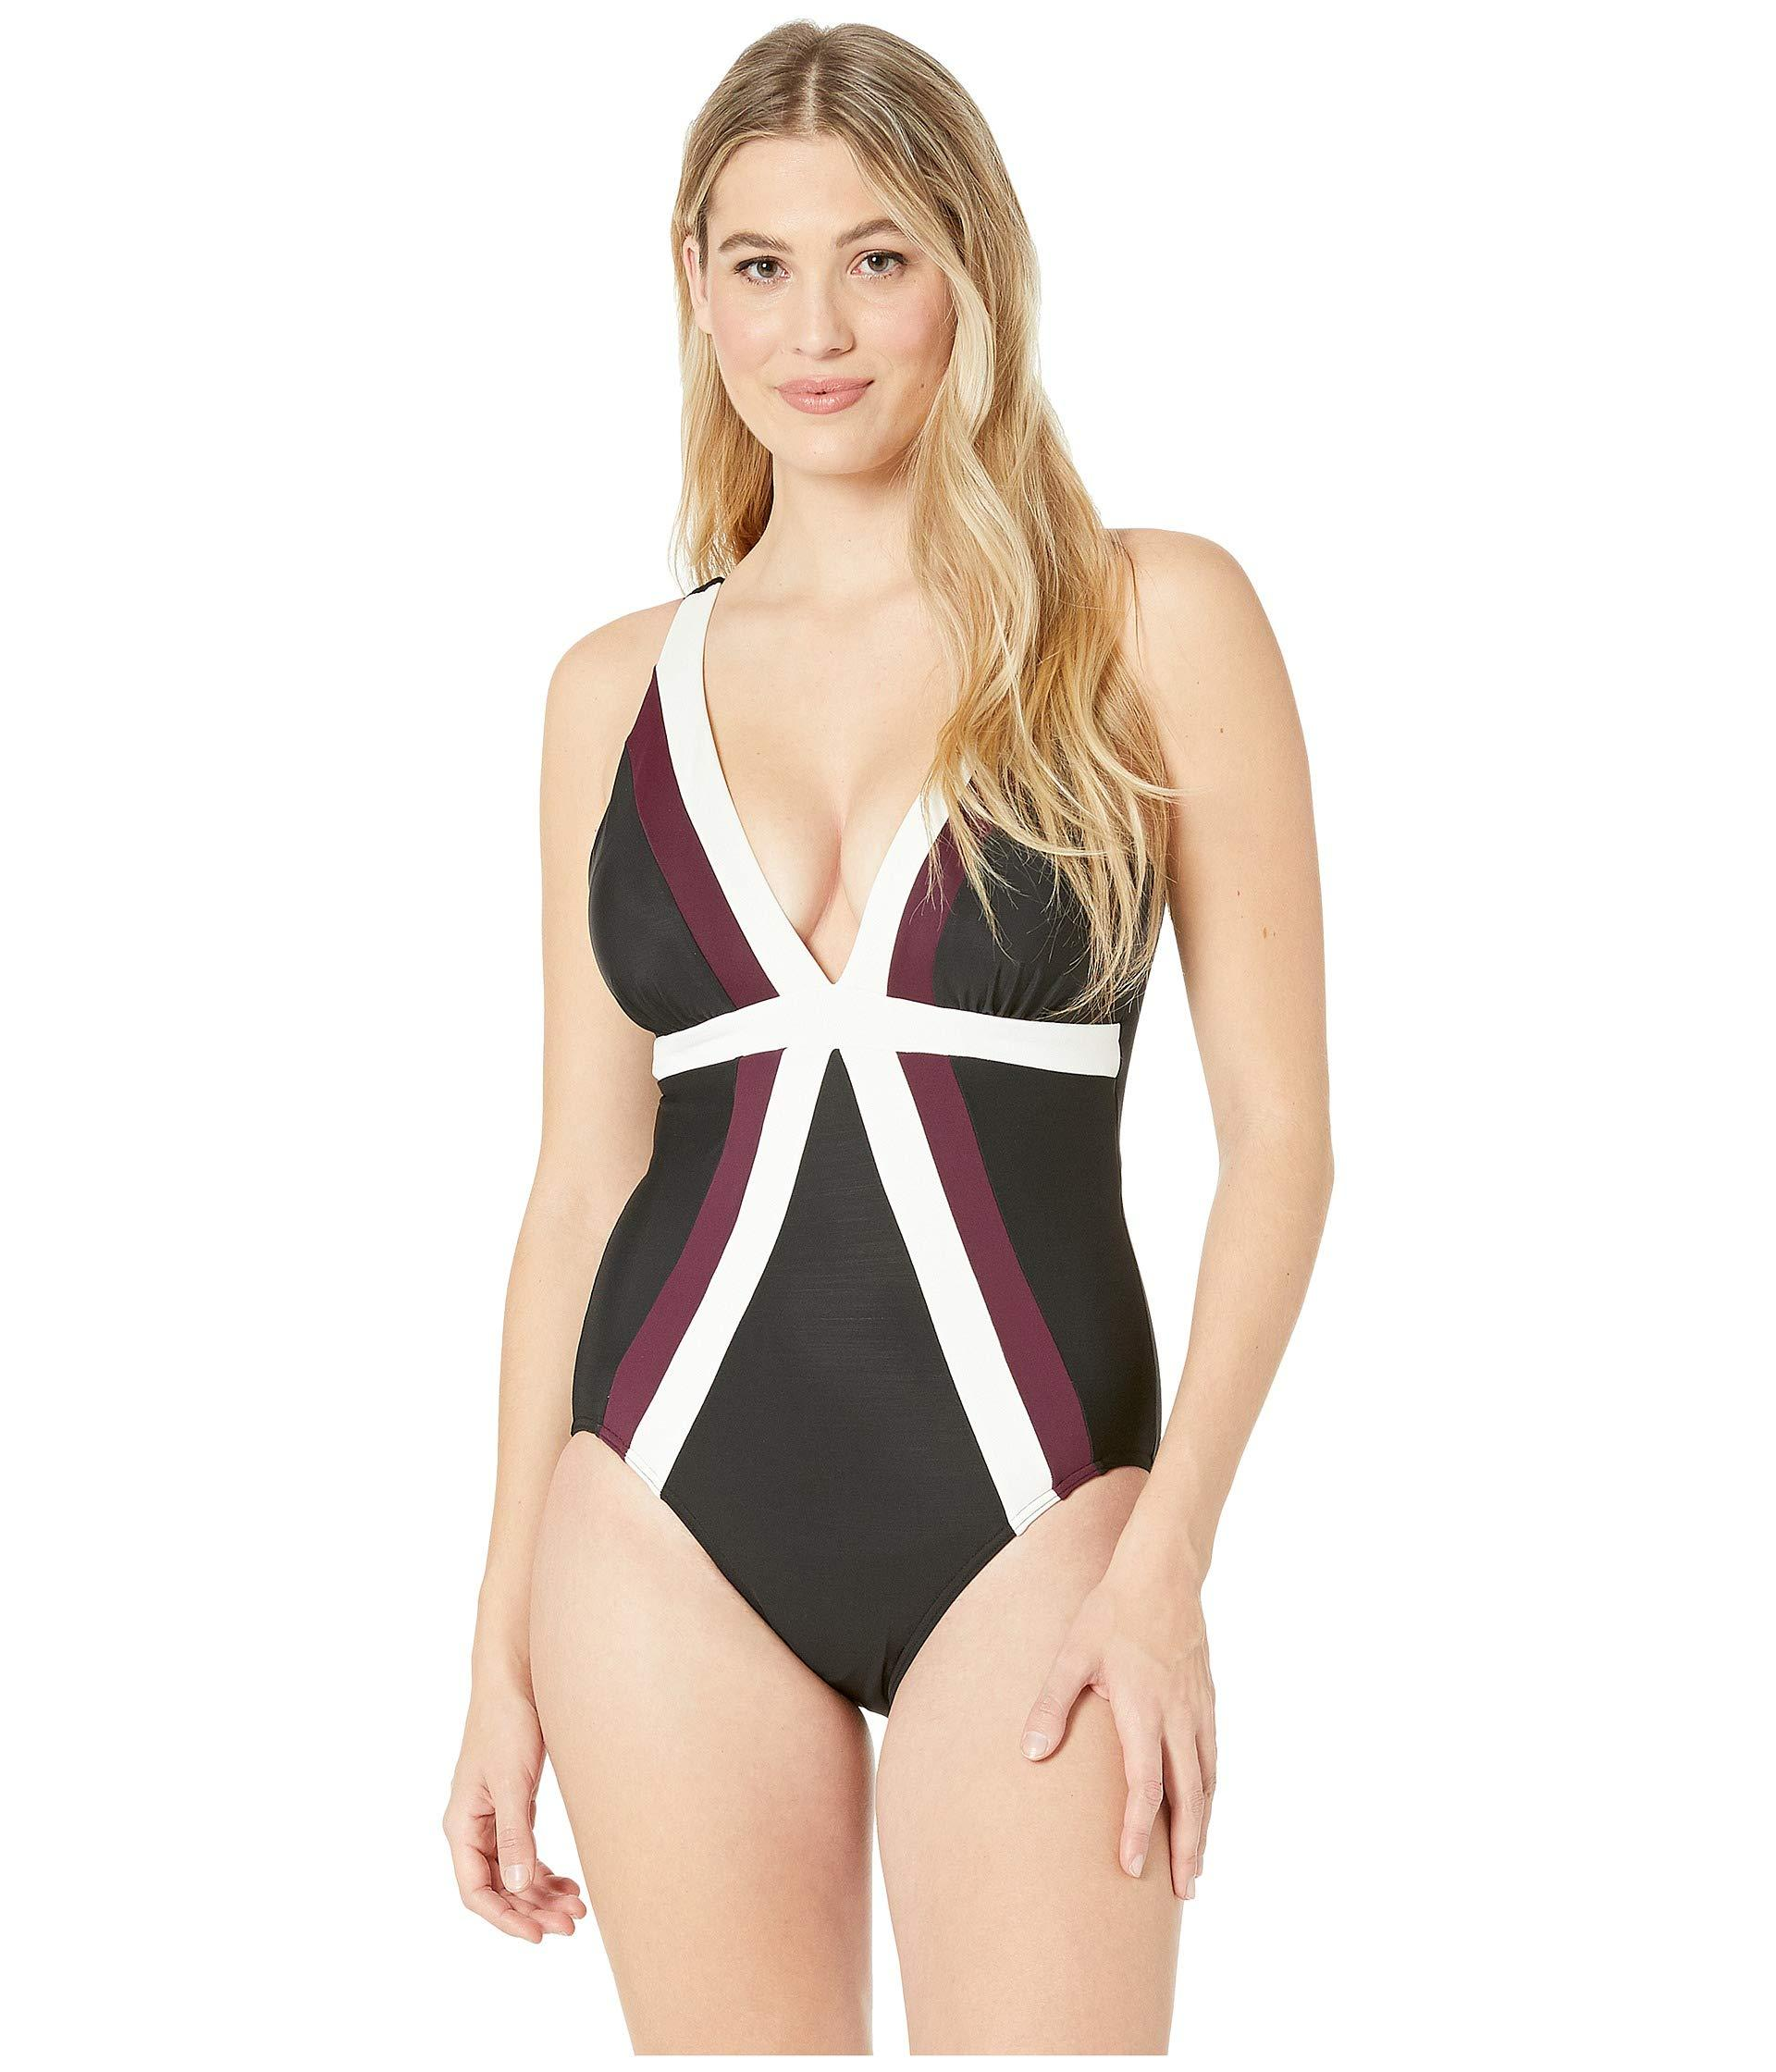 356e5cae1e23a Miraclesuit. Spectra Trilogy One-piece (black) Women's Swimsuits ...